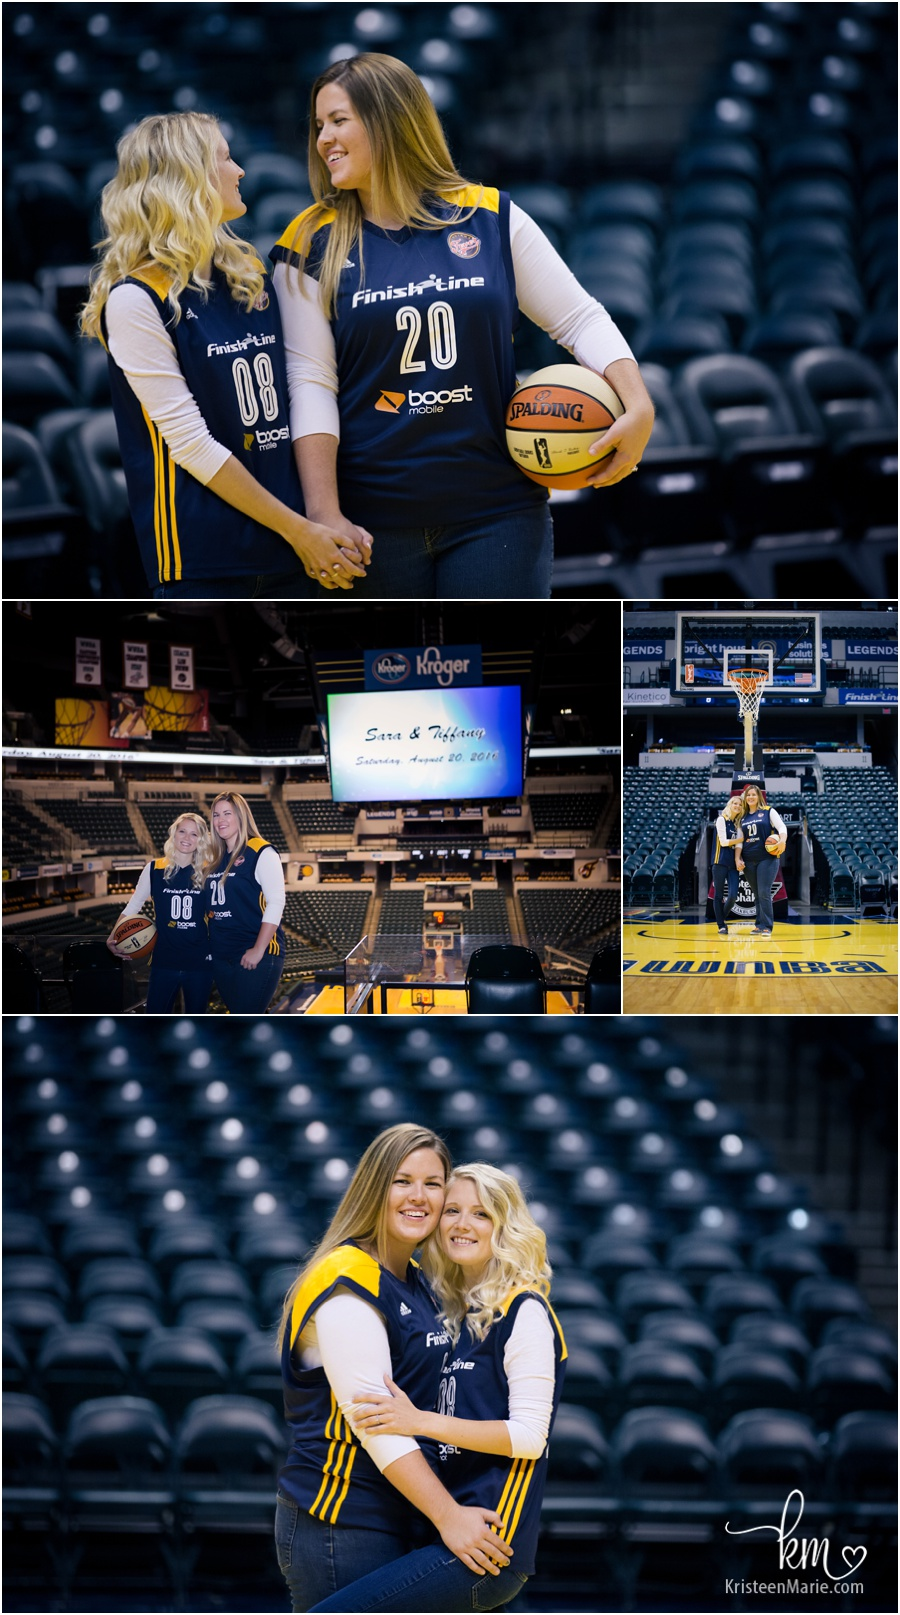 Couple at Bankers Life